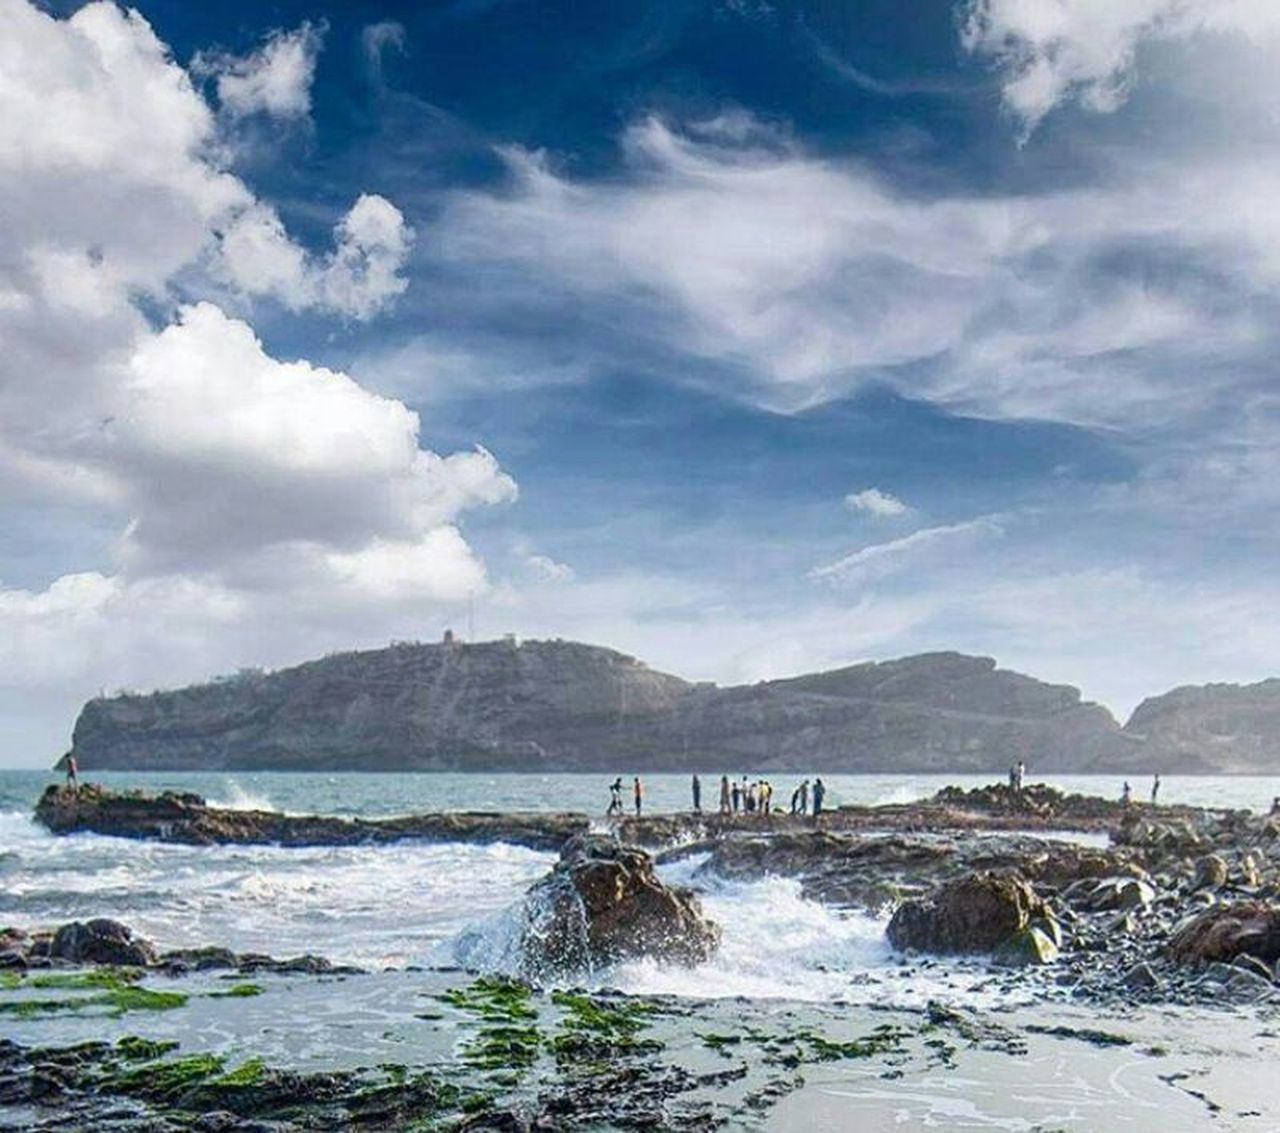 sea, cloud - sky, beach, water, nature, mountain, wave, outdoors, sky, scenics, no people, landscape, day, travel destinations, beauty in nature, motion, power in nature, blue, vacations, architecture